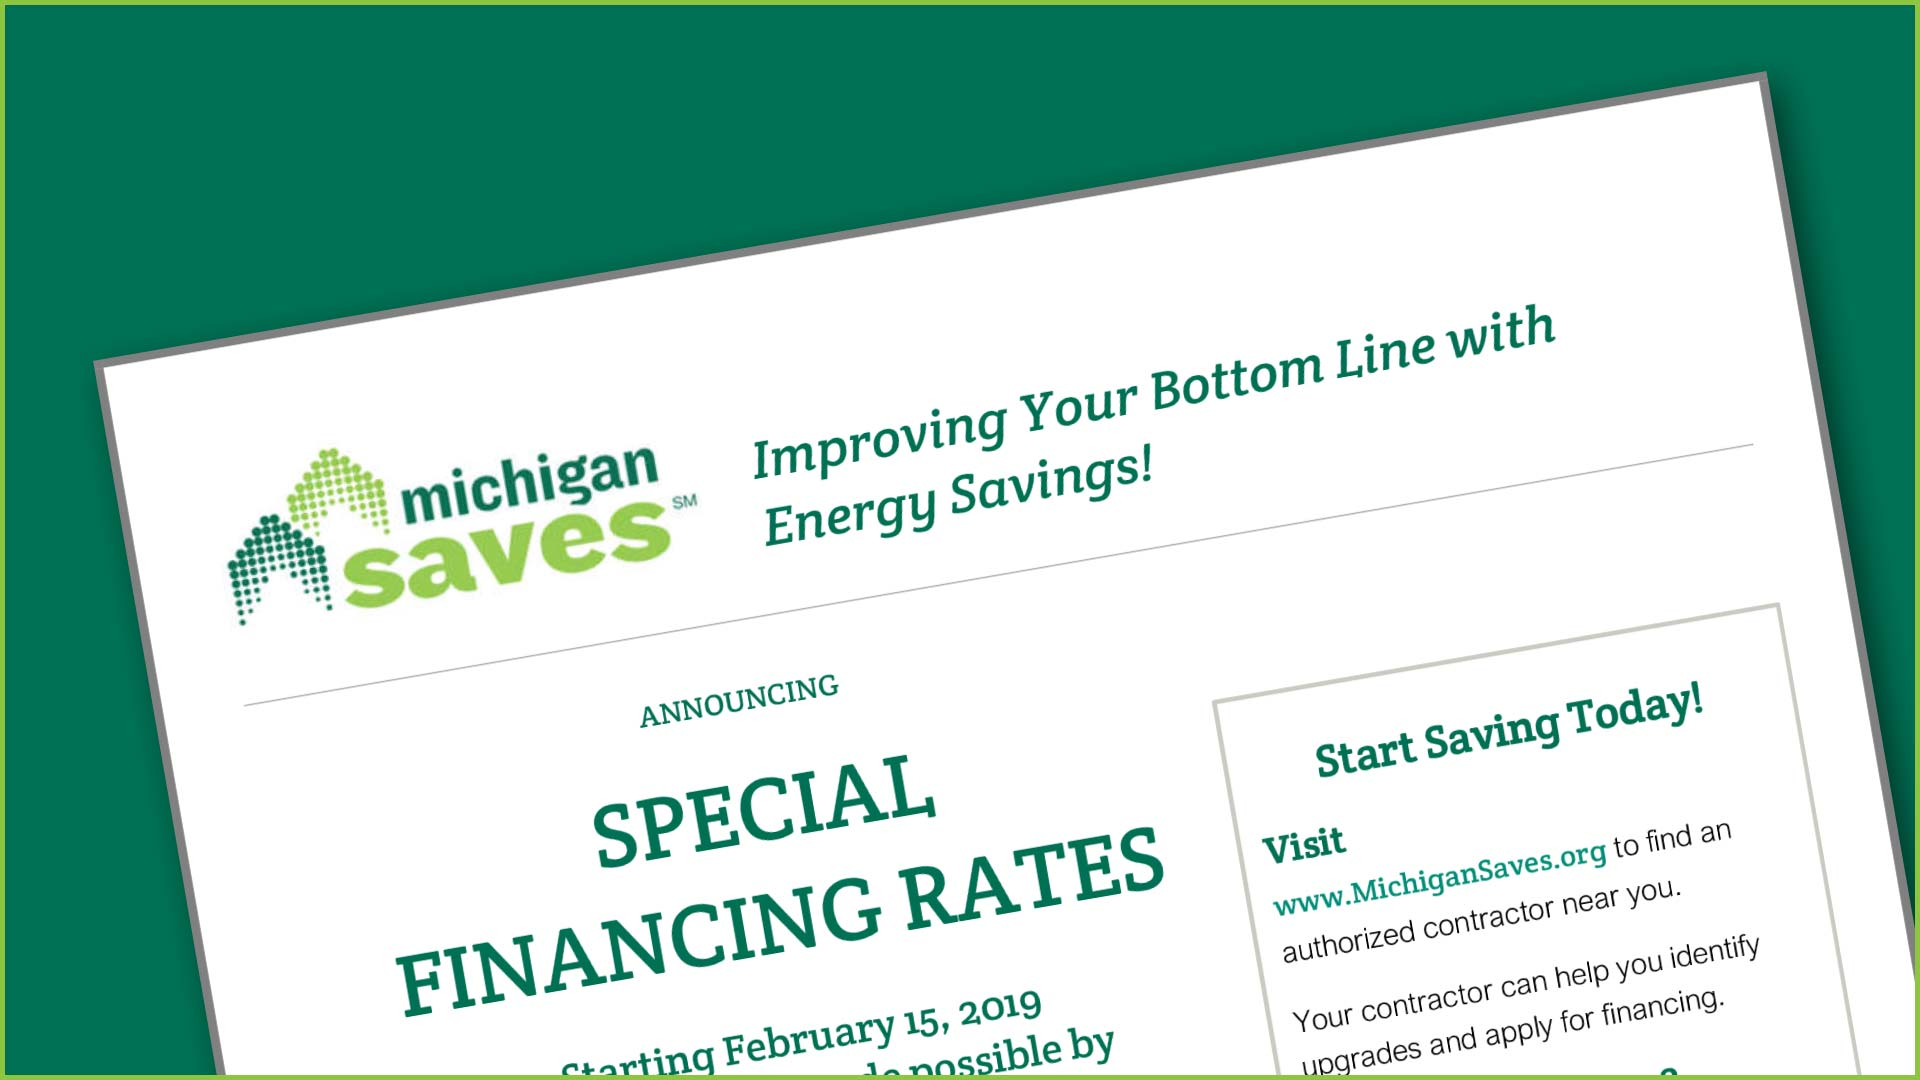 SEMCO Energy special financing rates